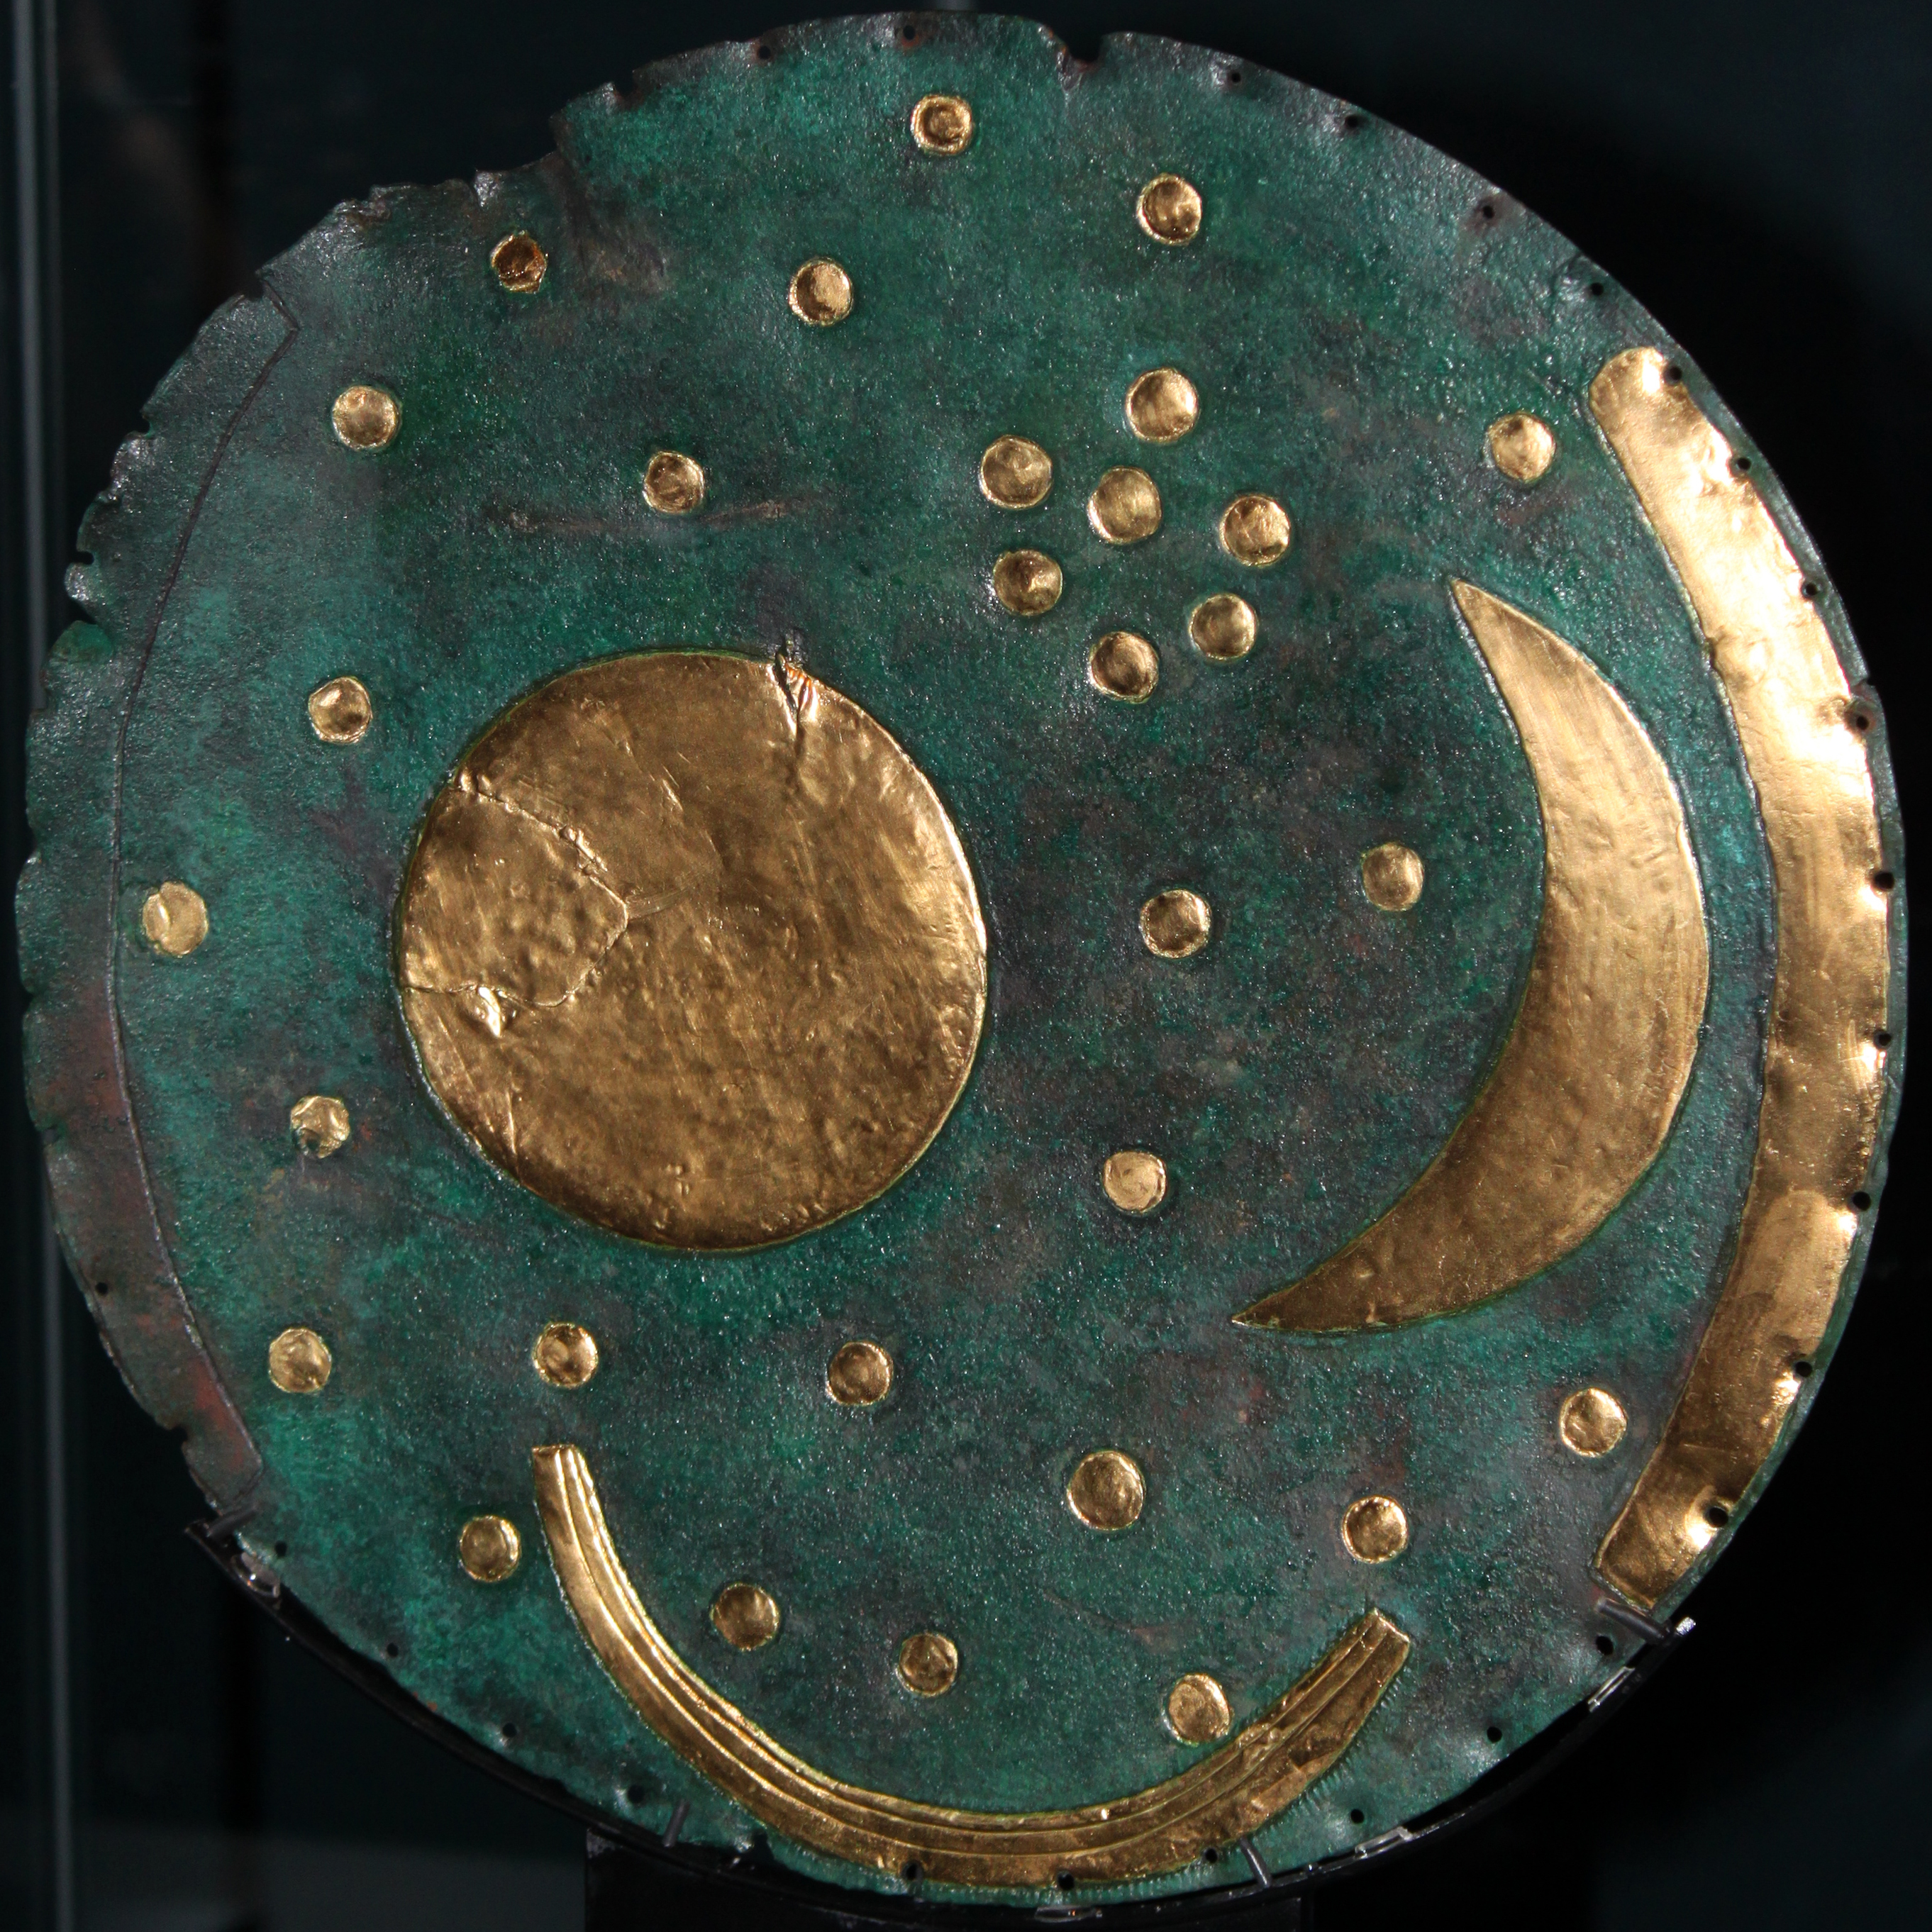 corellon_shield_1.jpg